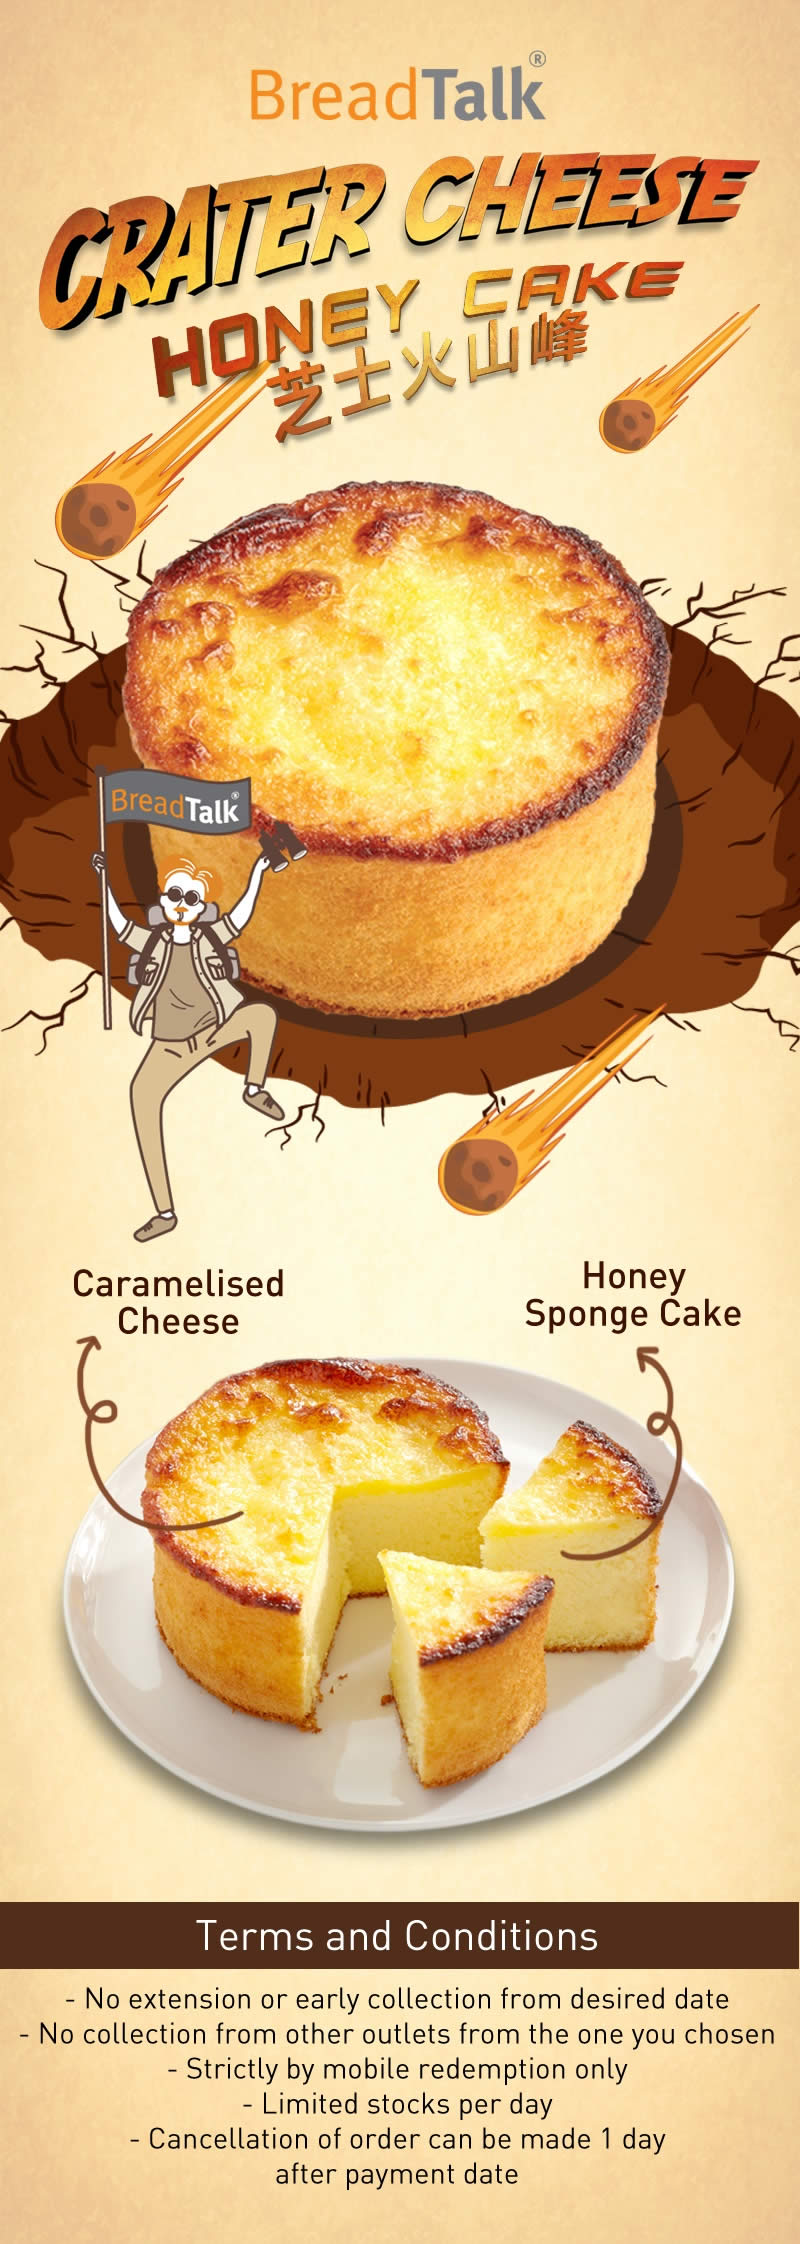 BreadTalk: 1-FOR-1 Crater Cheese Honey Cake deal ...